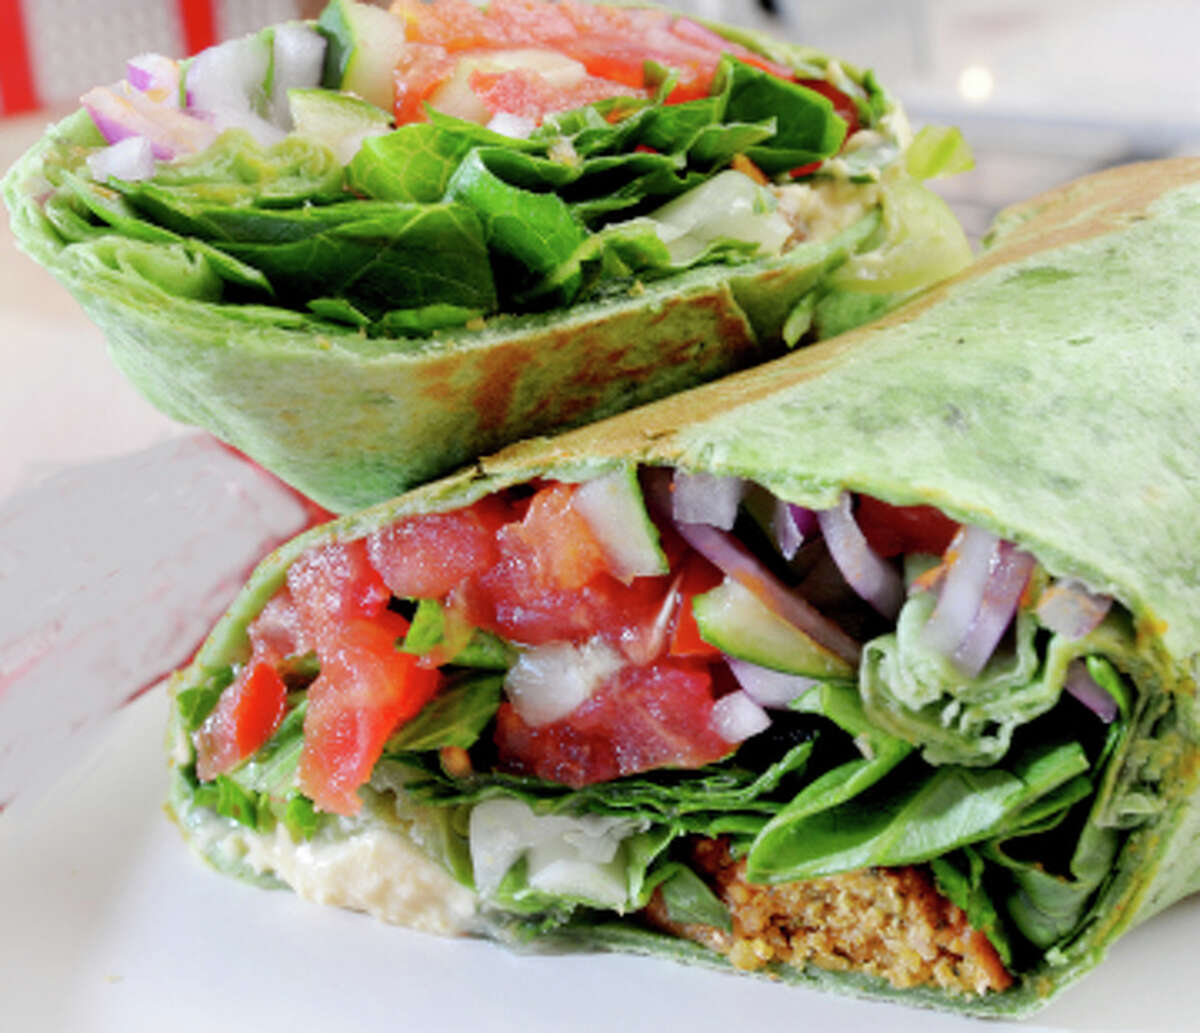 St. Ann Maronite Catholic Church in Watervliet will be offering all the fixin's for a falafel wrap as a fundraising dinner scheduled for 4 to 6 p.m. Friday, Sept 17, 2021.